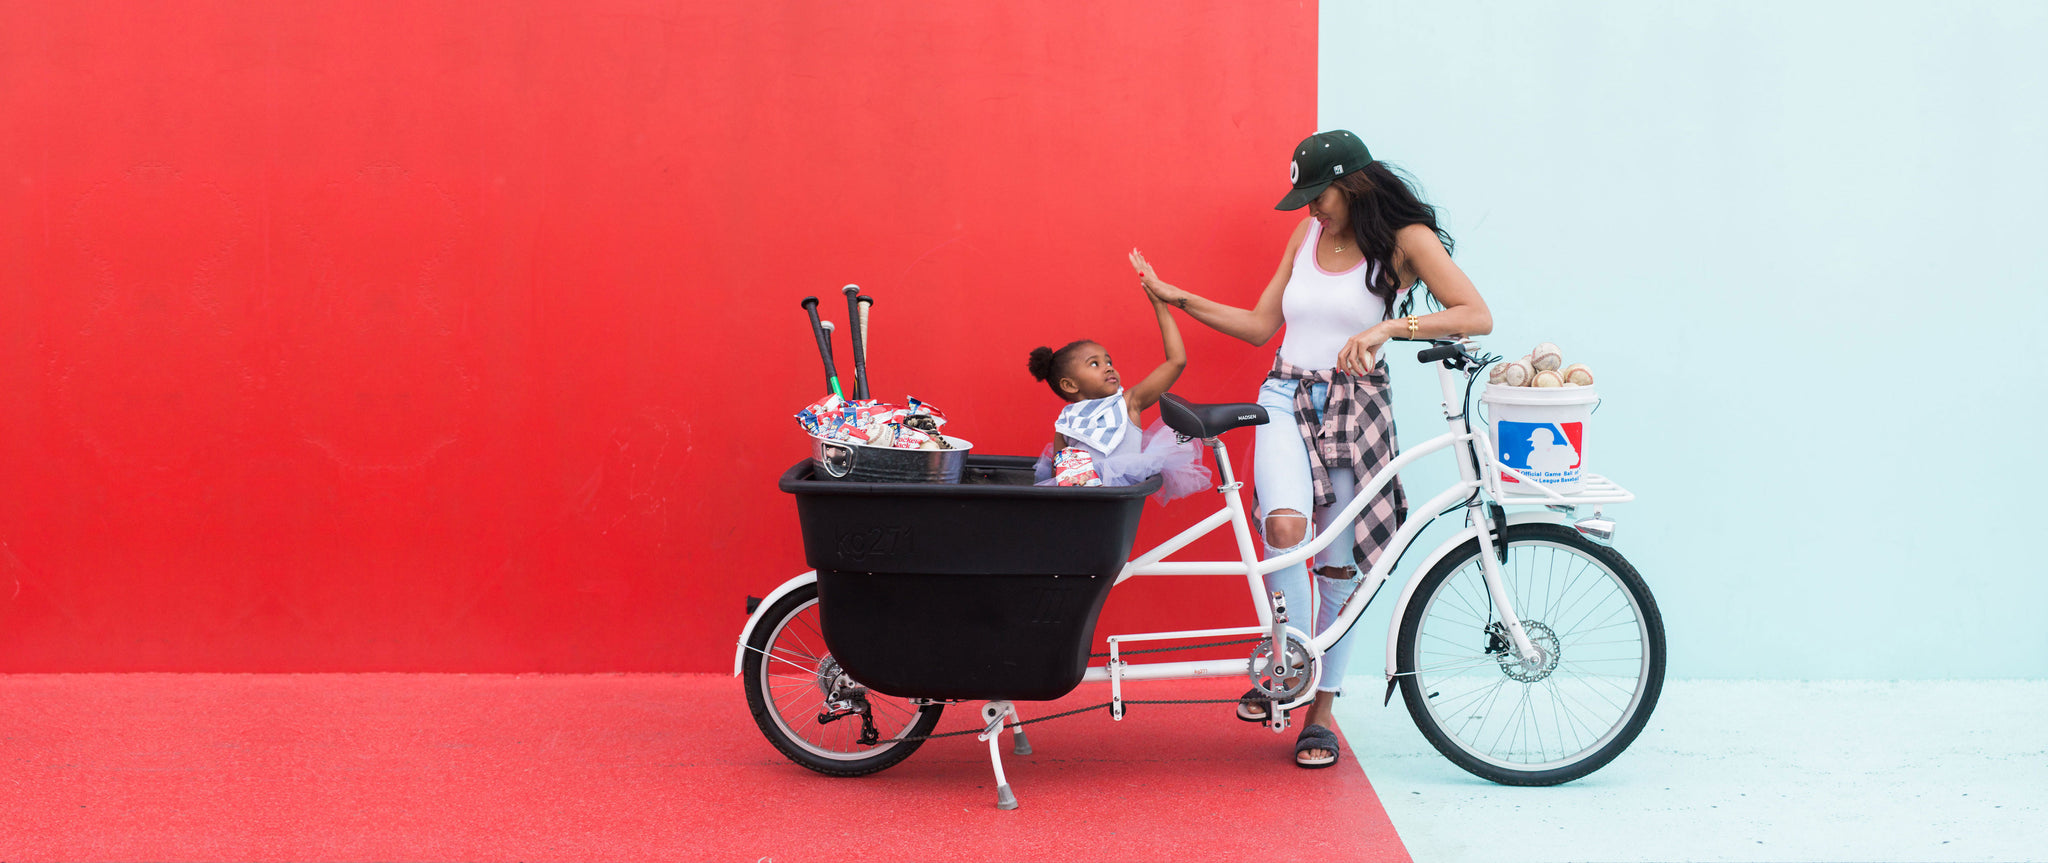 Madsen Cycles   A Fun, Unique Bicycle for the Family